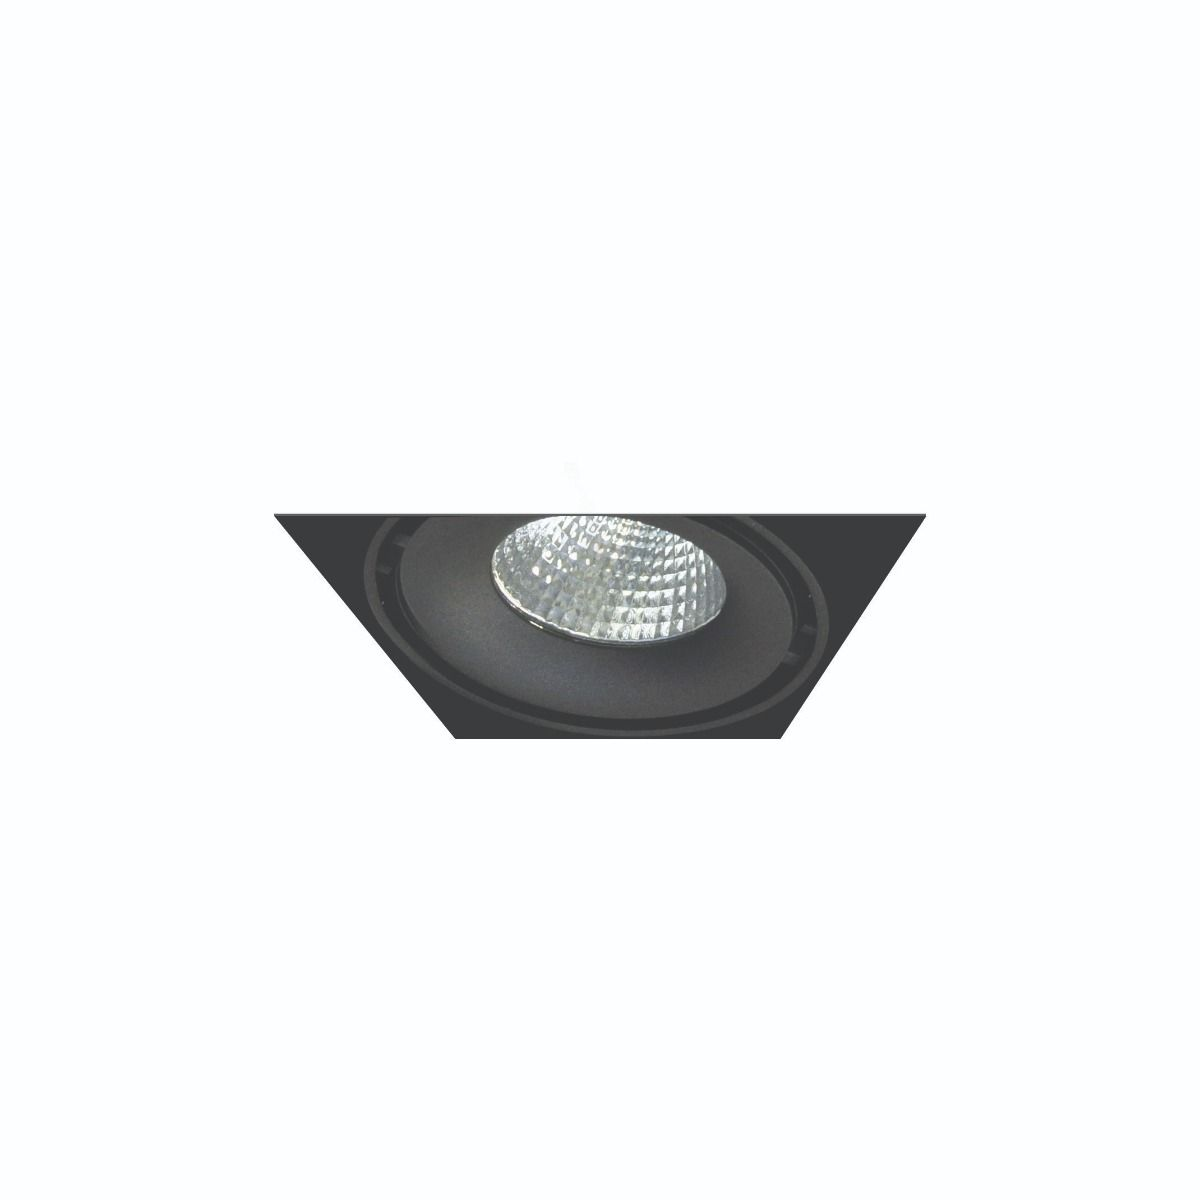 watch 2e0d5 82b2b Alcon Lighting 14026-1 Oculare Architectural LED Trimless Adjustable 1 Head  Multiple Recessed Lighting System Direct Down Fixture